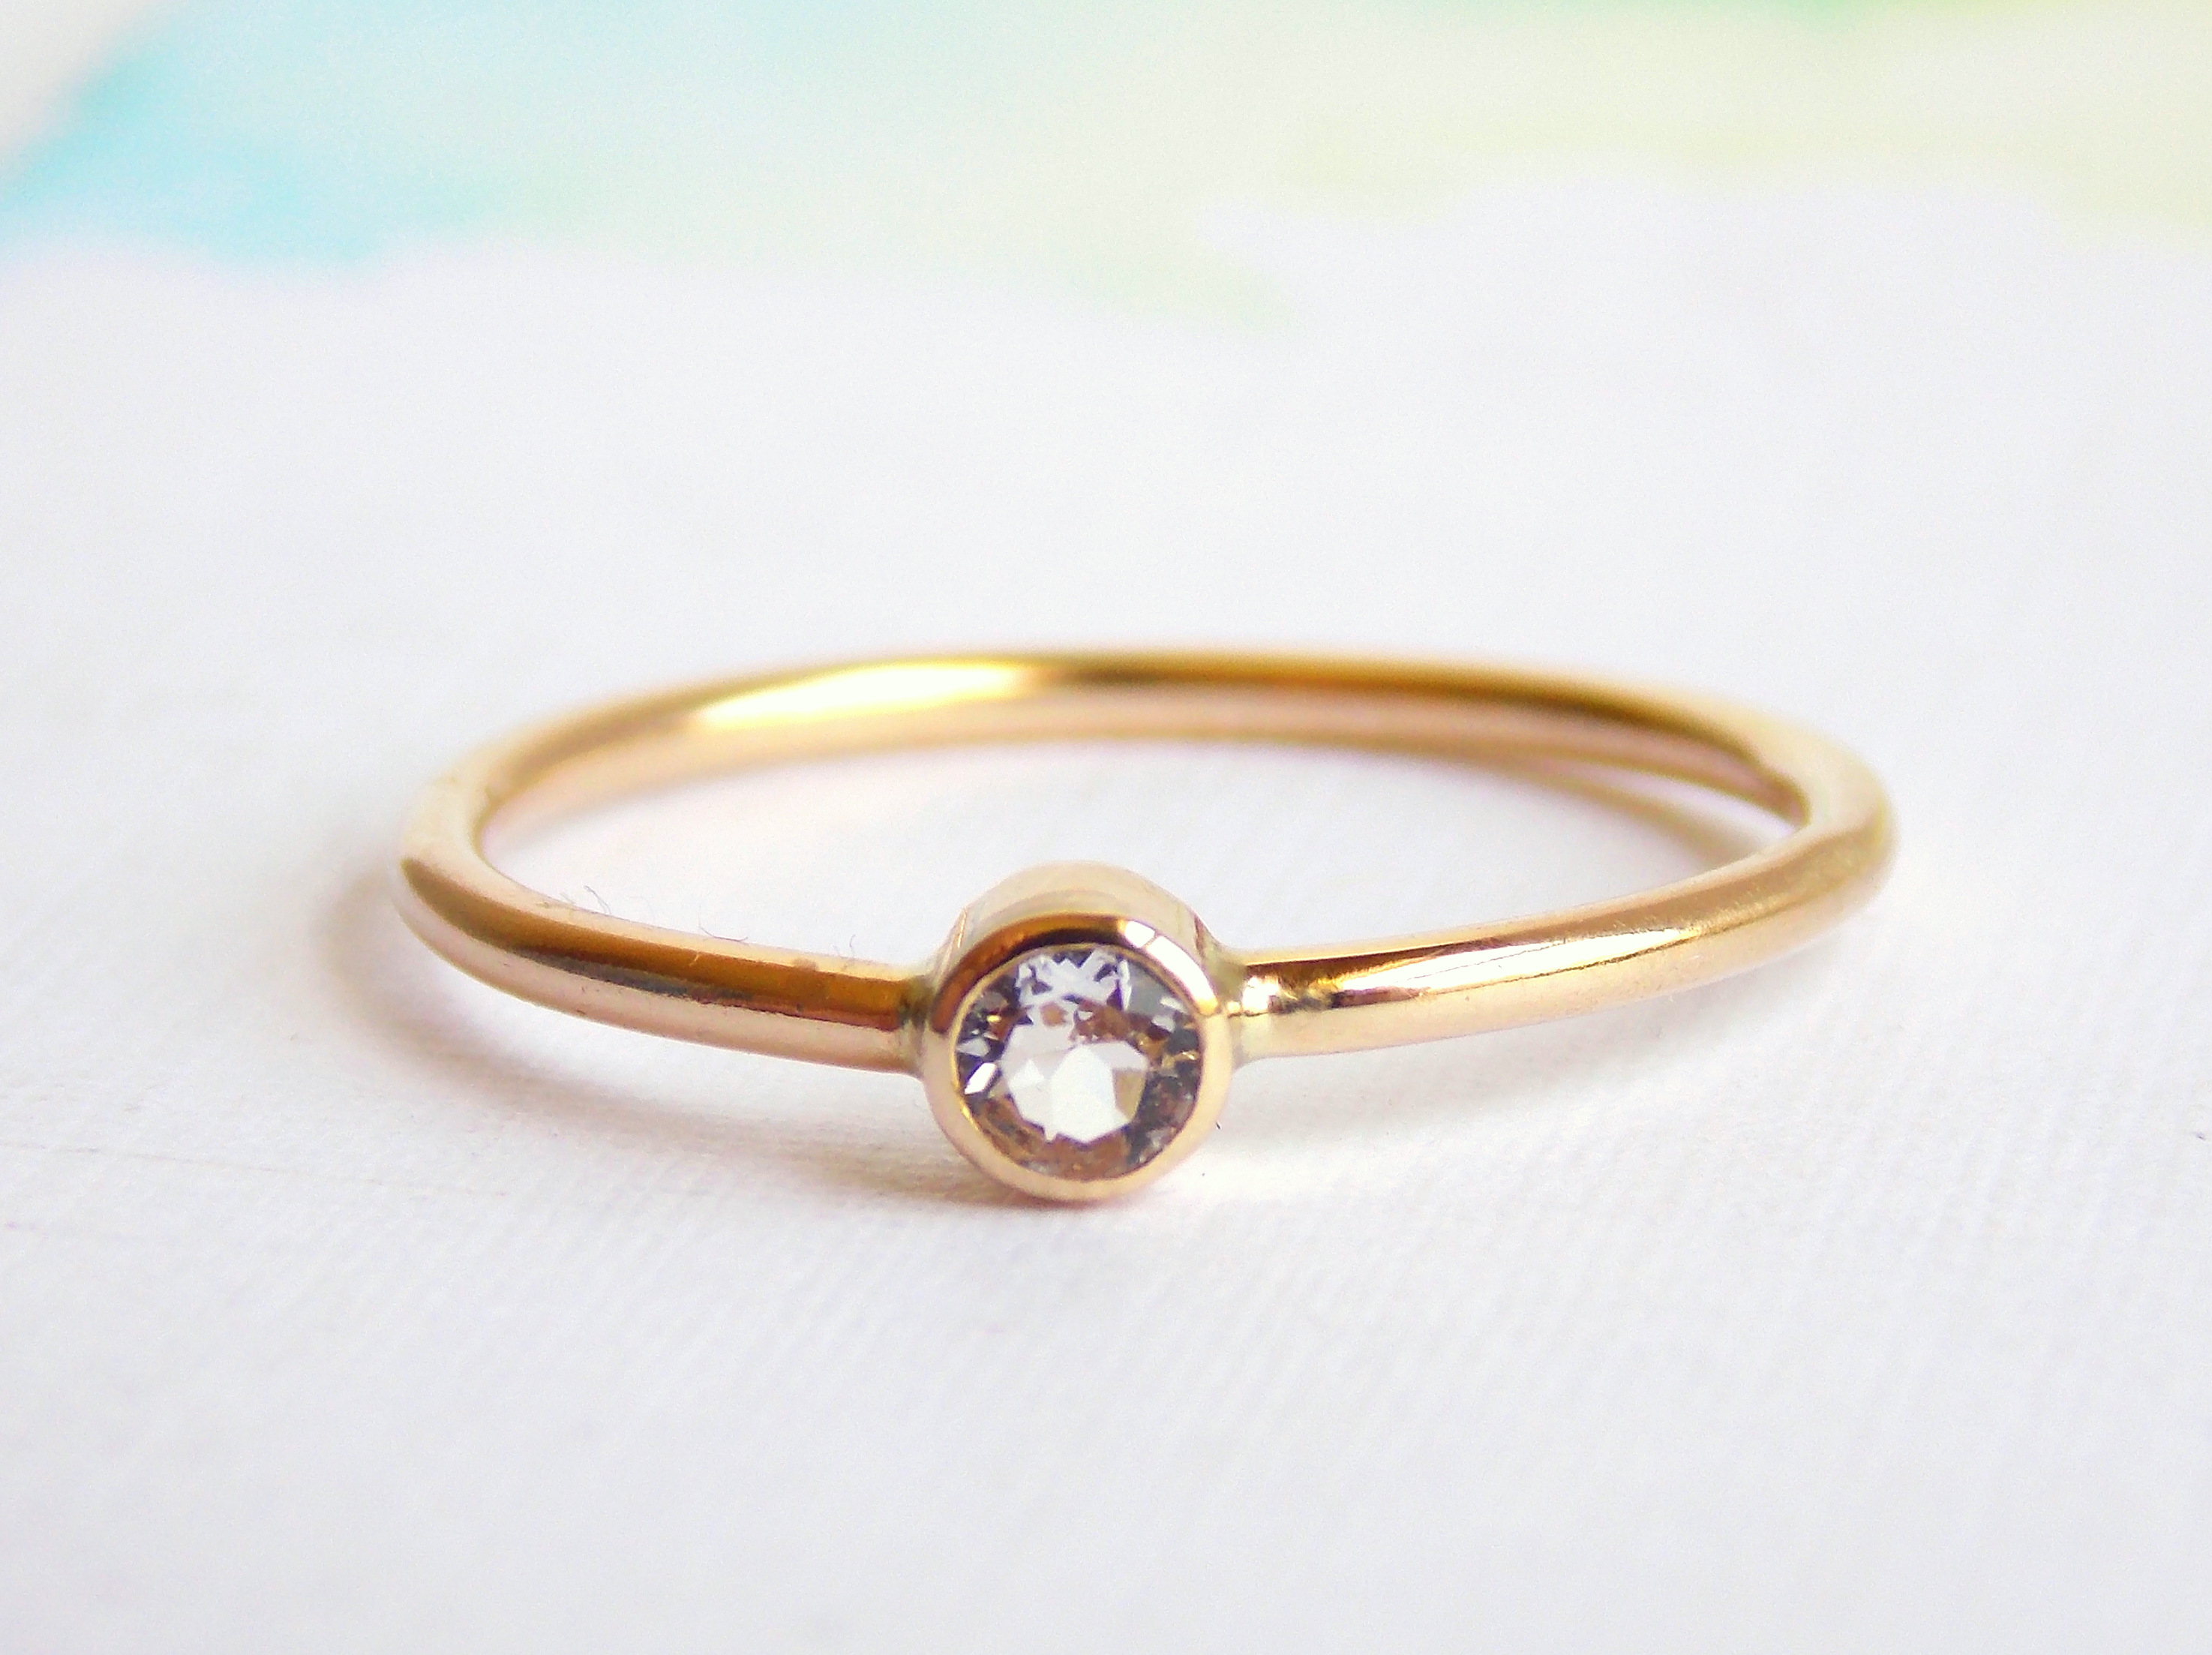 morganite gold belindasaville com with atop white blush a blogs signature setting store in hammered new delicate rings news my this hued band set ring sapphire and features prong